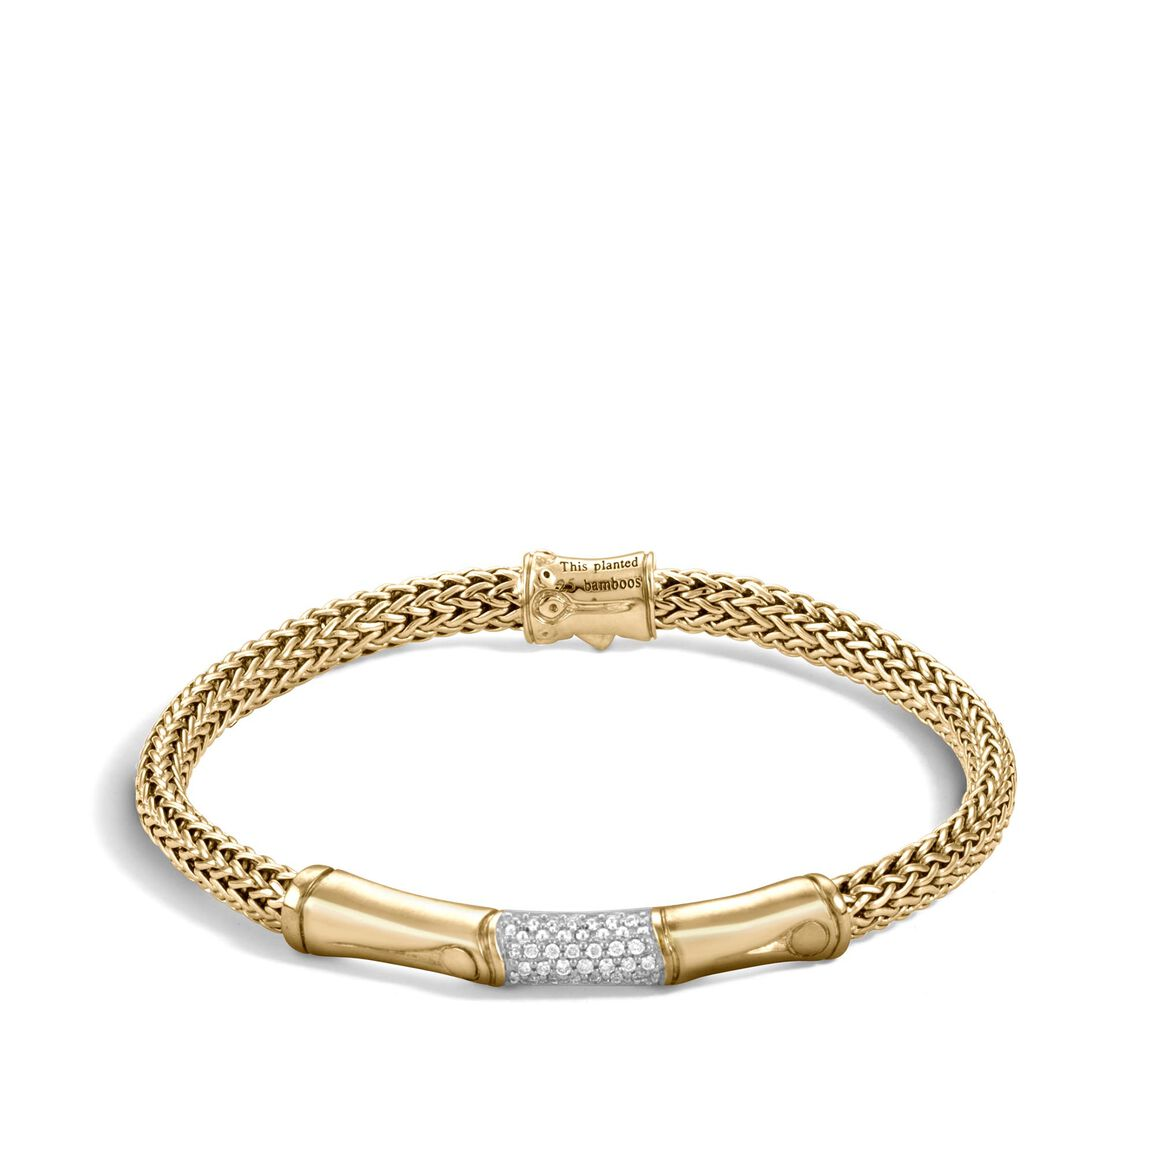 Bamboo 5MM Station Bracelet in 18K Gold with Diamonds